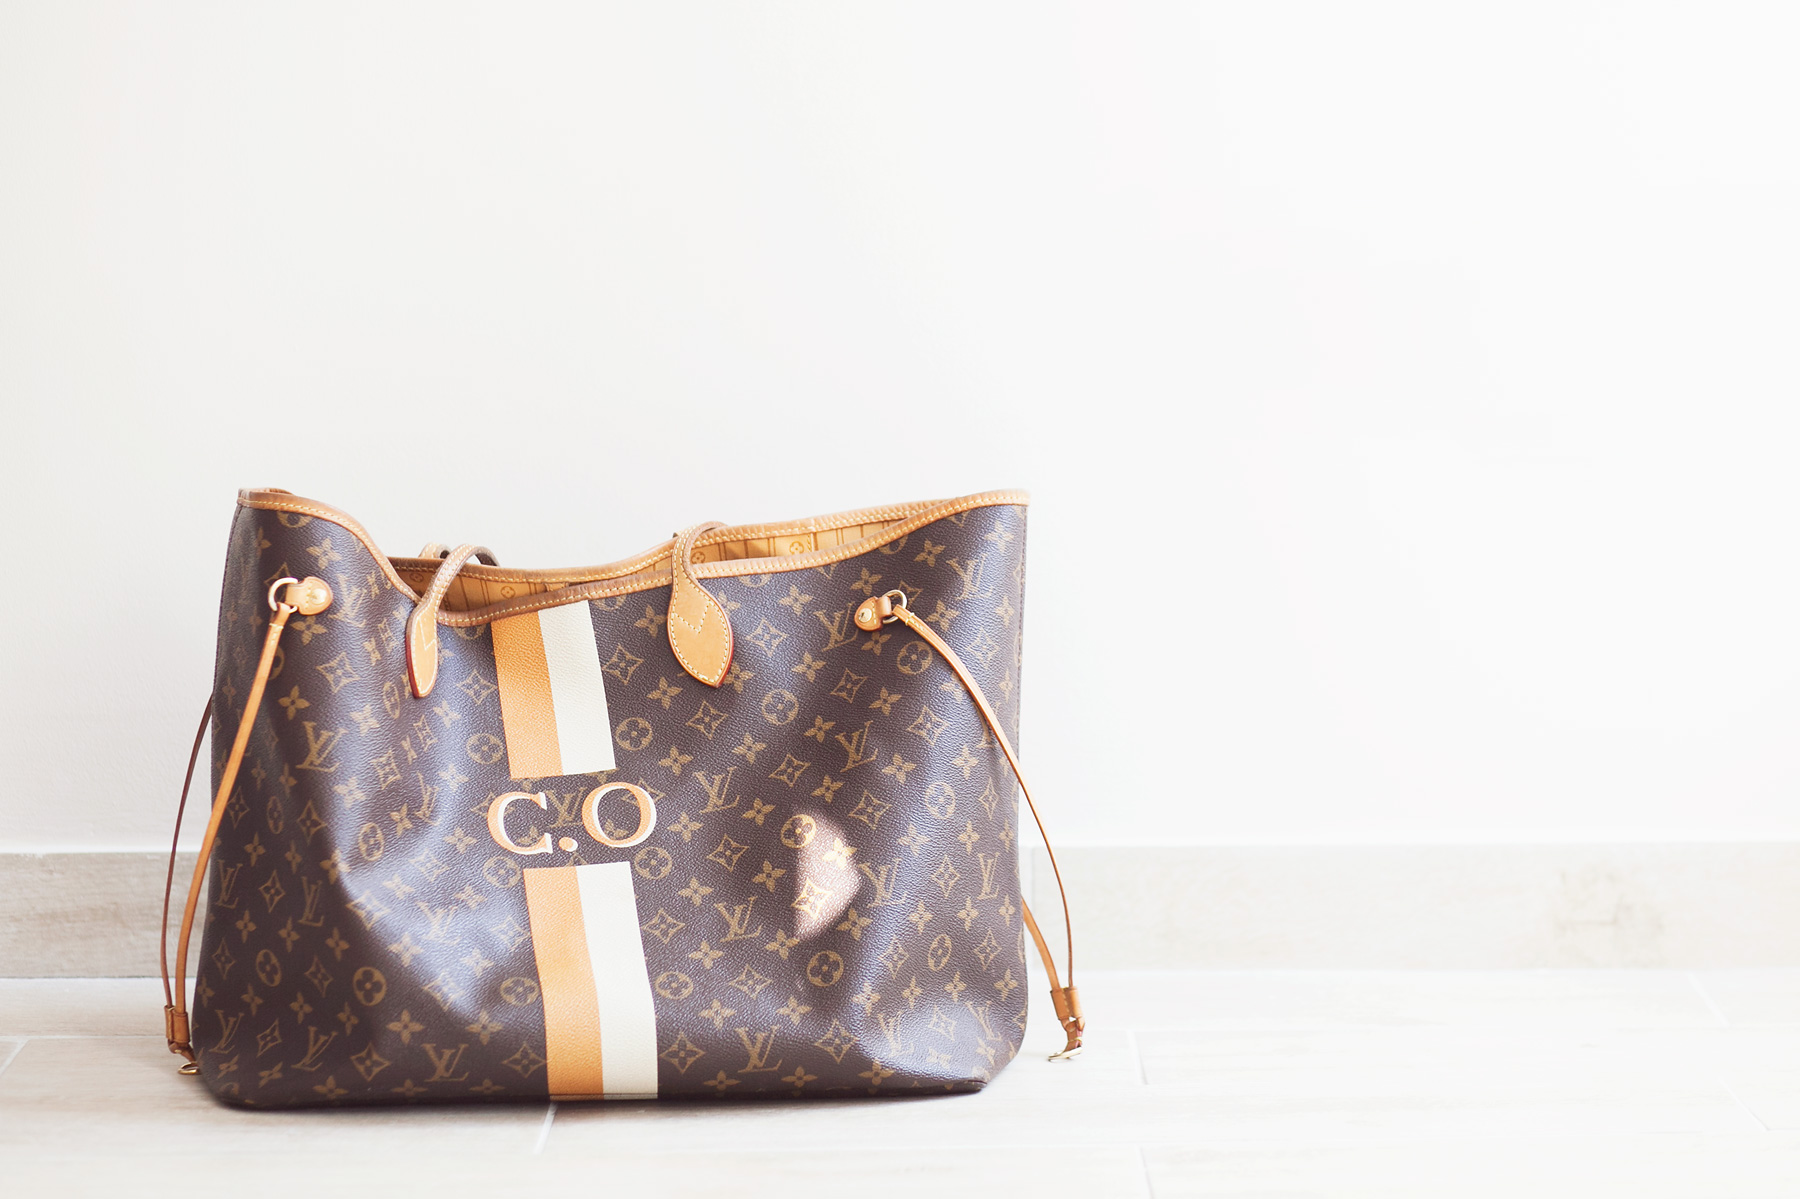 Louis Vuitton Neverfull by Carin Olsson (Paris in Four Months)